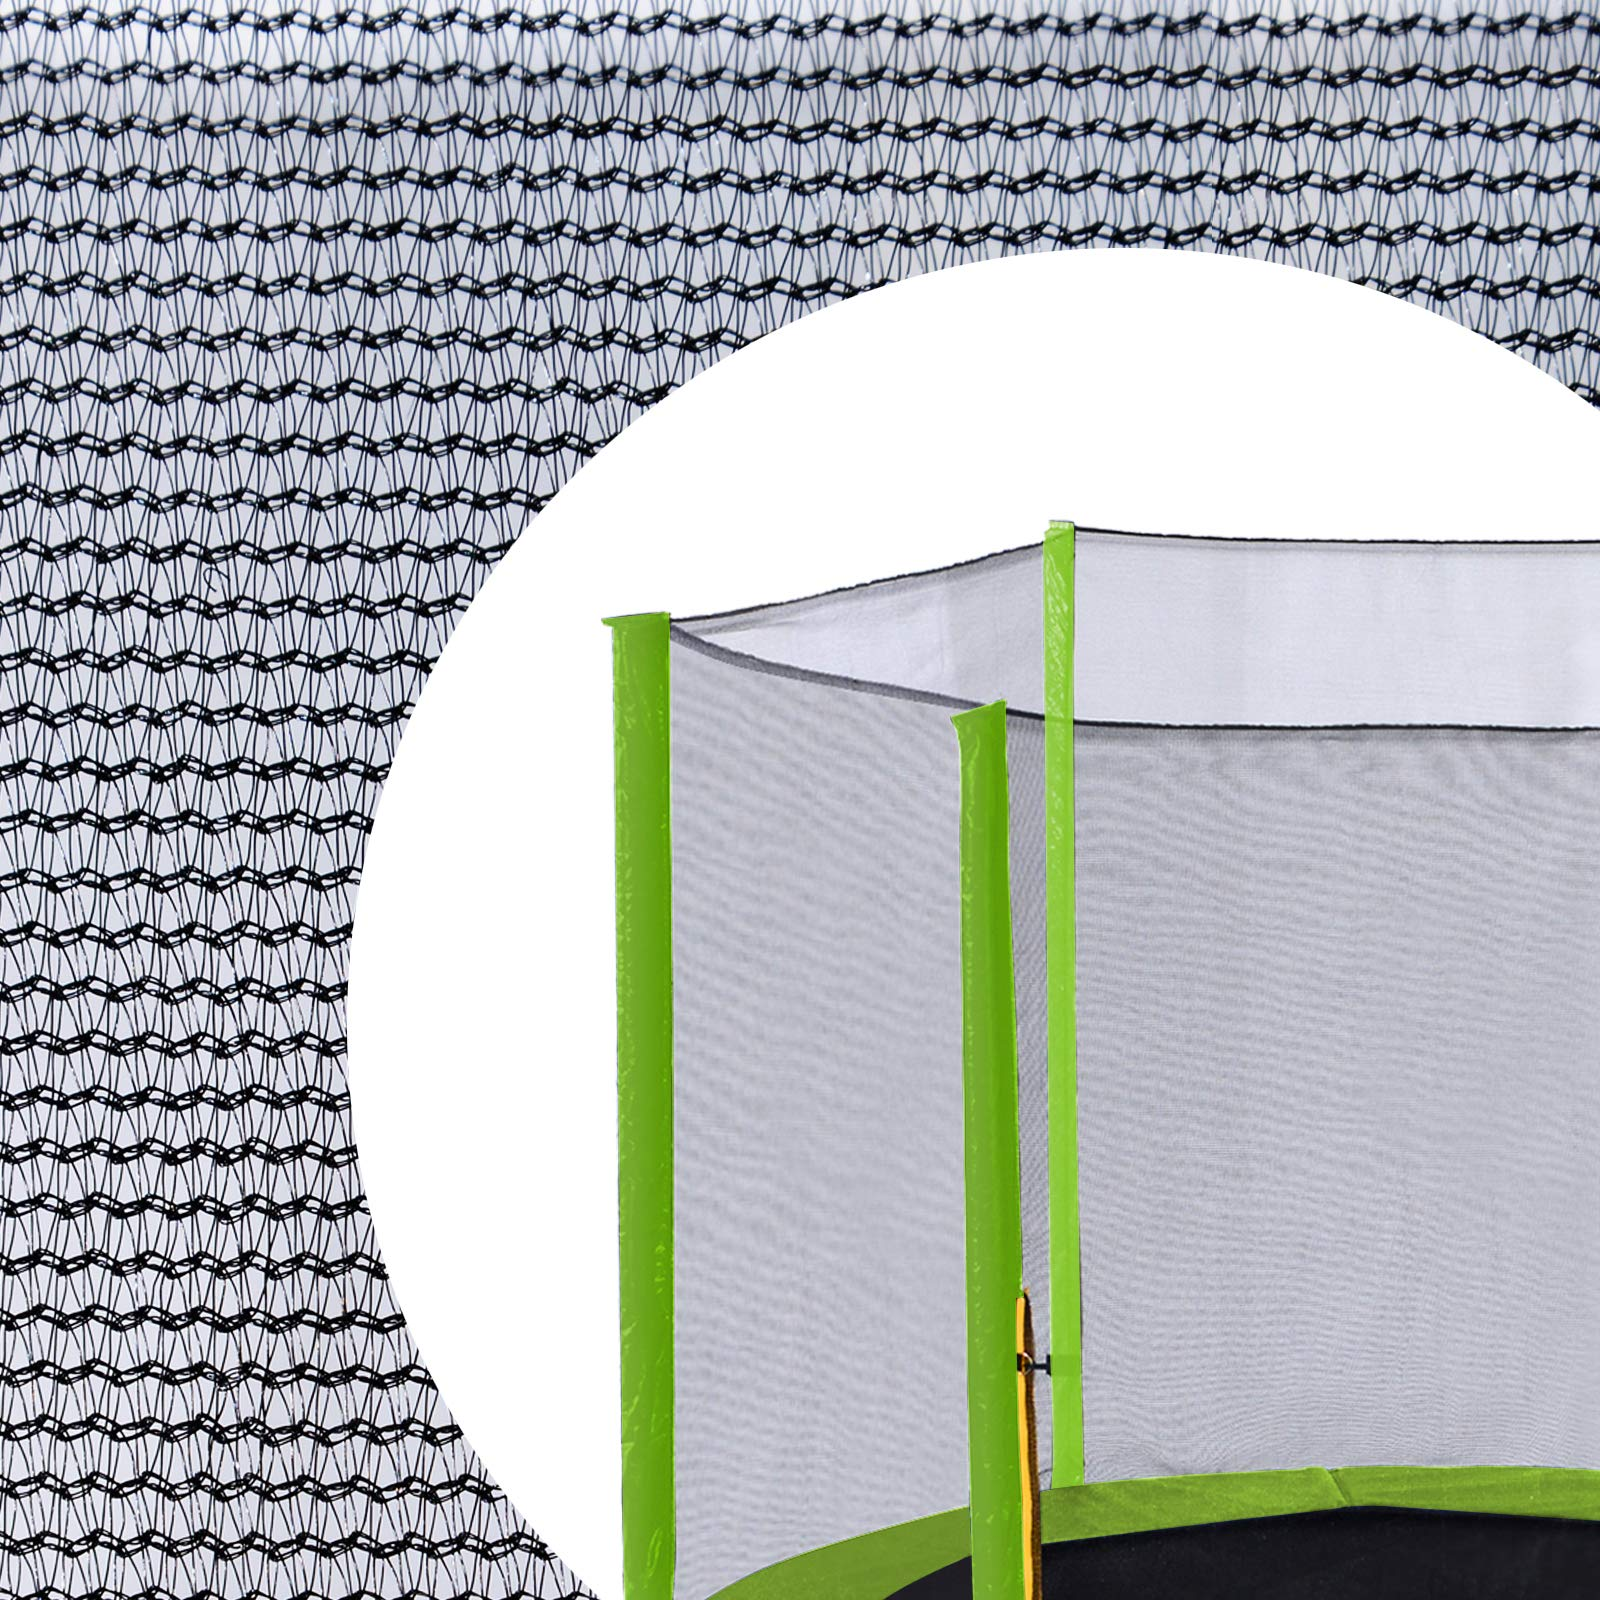 Exacme 15 Foot Trampoline Replacement Outer Enclosure Net with 6 Light Green Sleeves, Poles Not Included, EN015LG